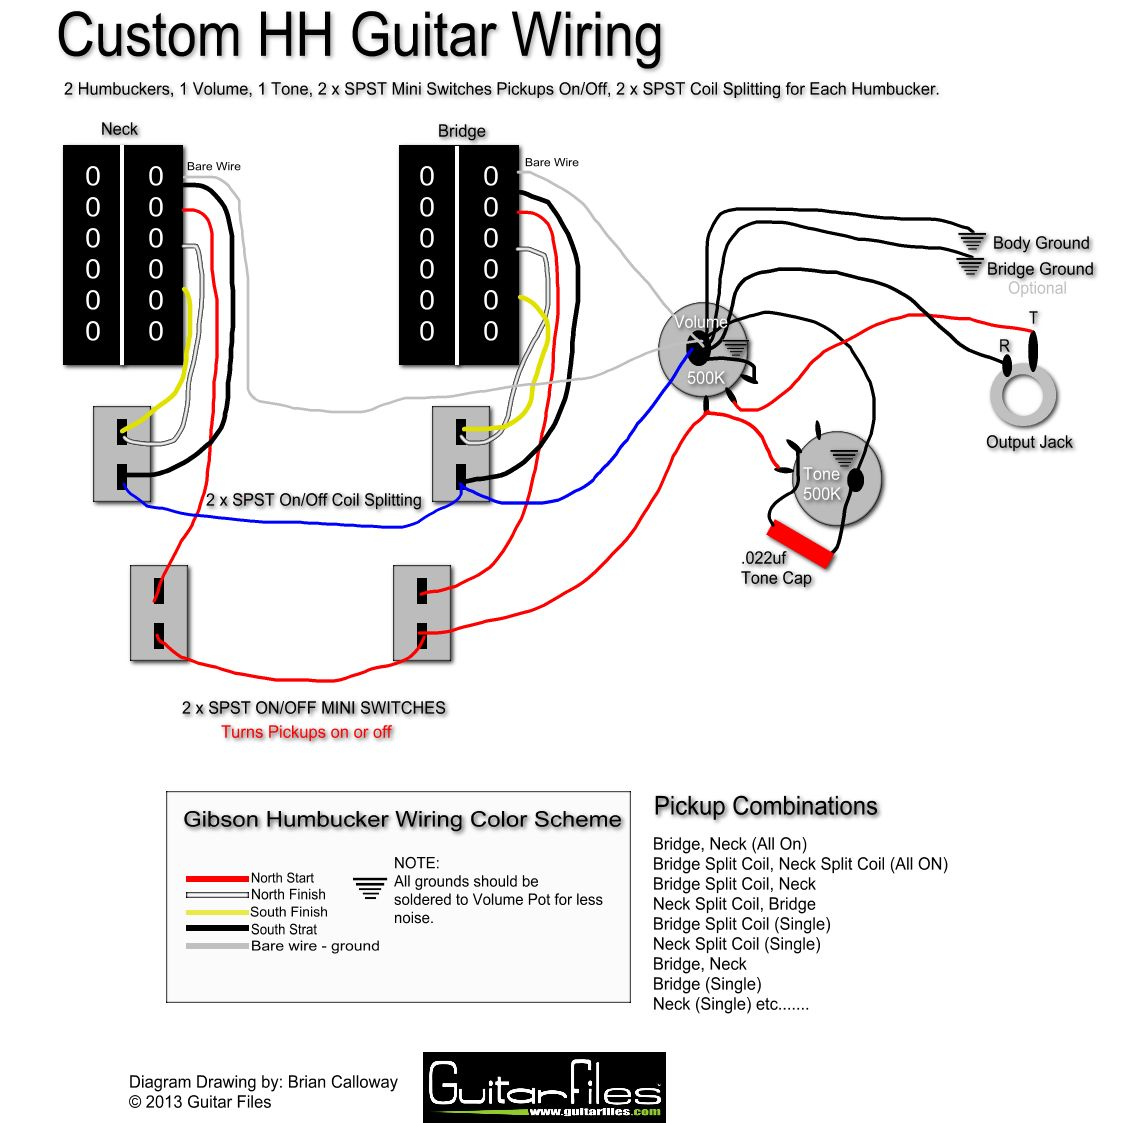 Fender Strat Hh Wiring Diagram